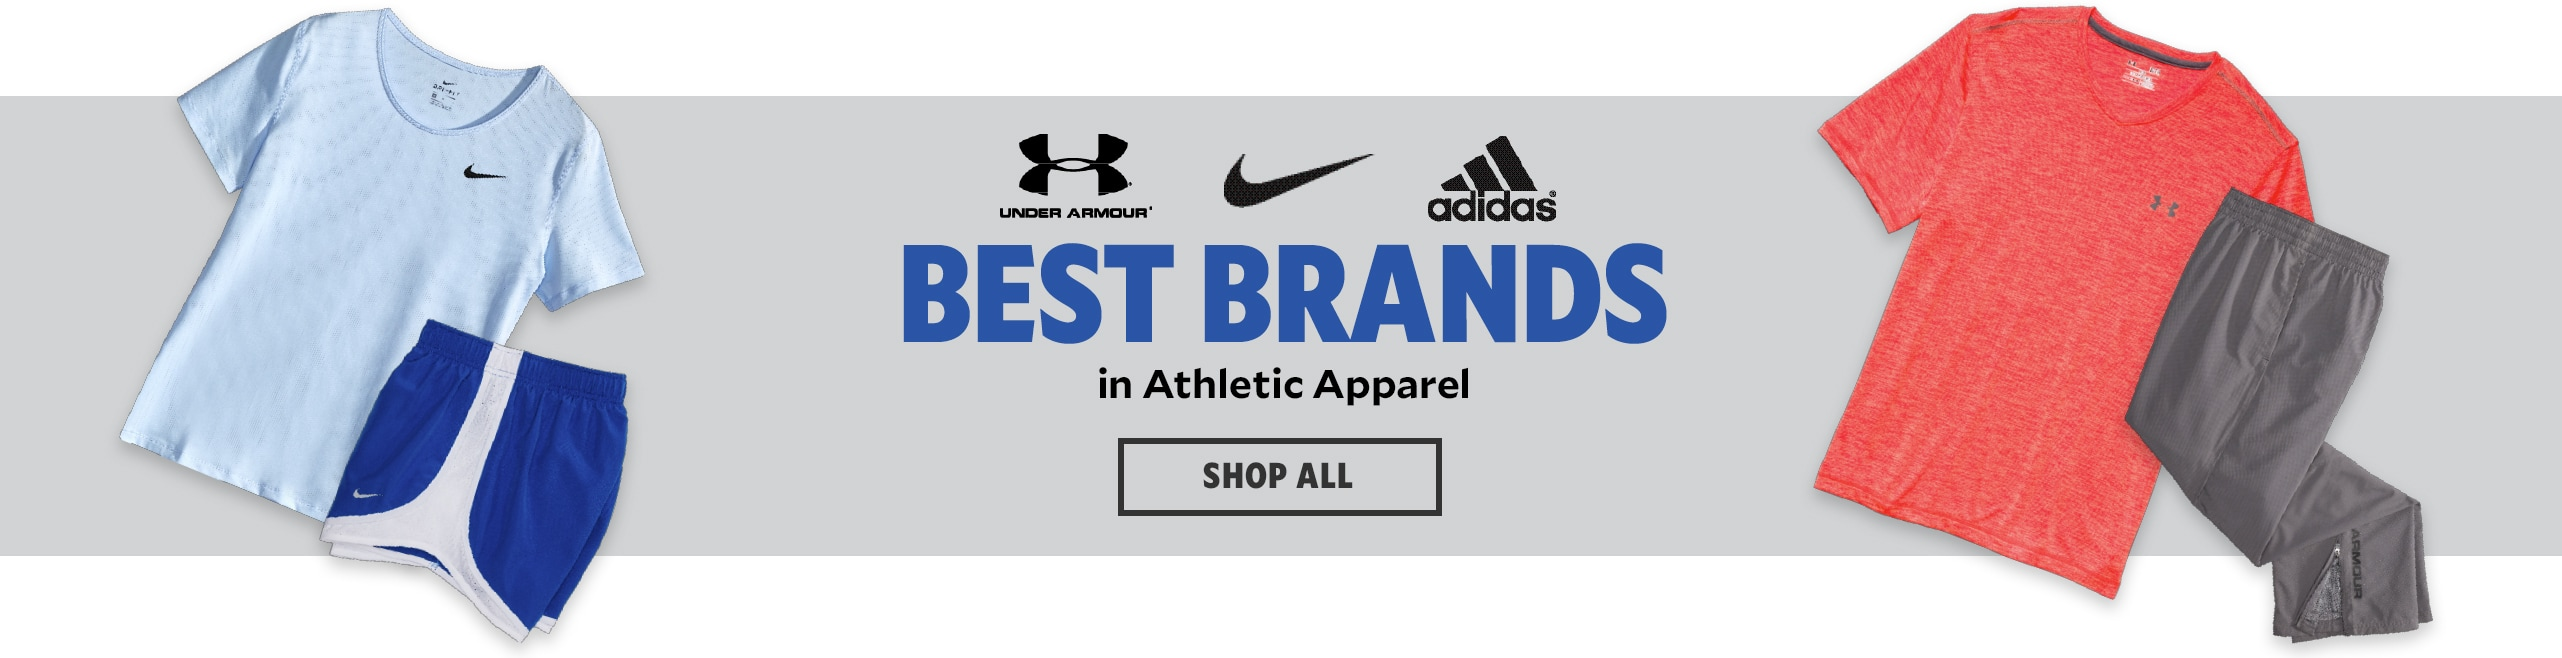 Best Brands In Athletic Apparel, Shop All | Brands include, Under Armour, Nike, and adidas